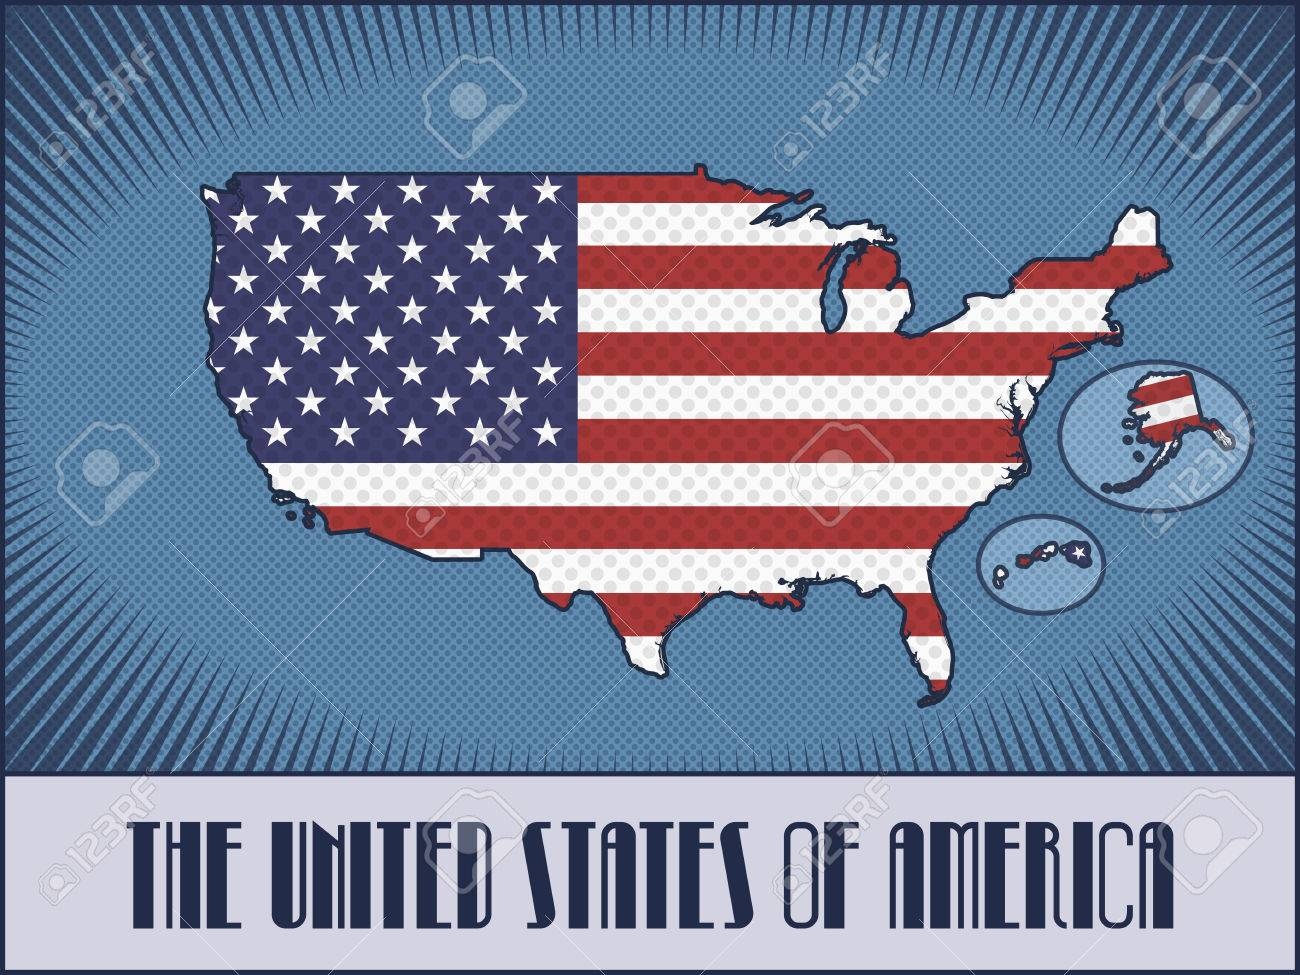 vector vector map of the united states of america with alaska and hawaii in colors of the american flag made in retro style with ben day dots